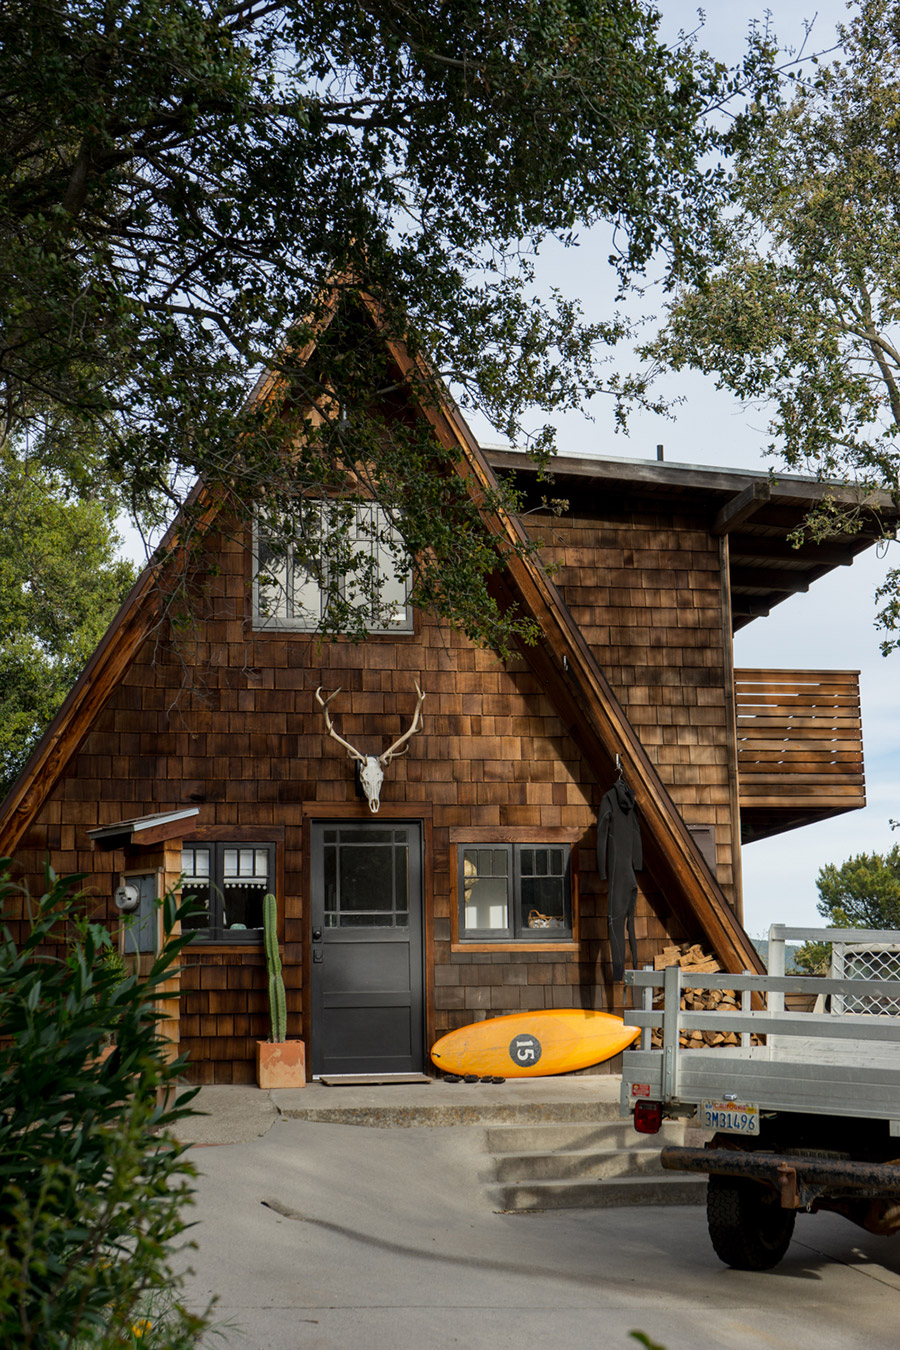 https://indoek.com/article/surf-shacks-075-jeff-johnson-kara-thoms/